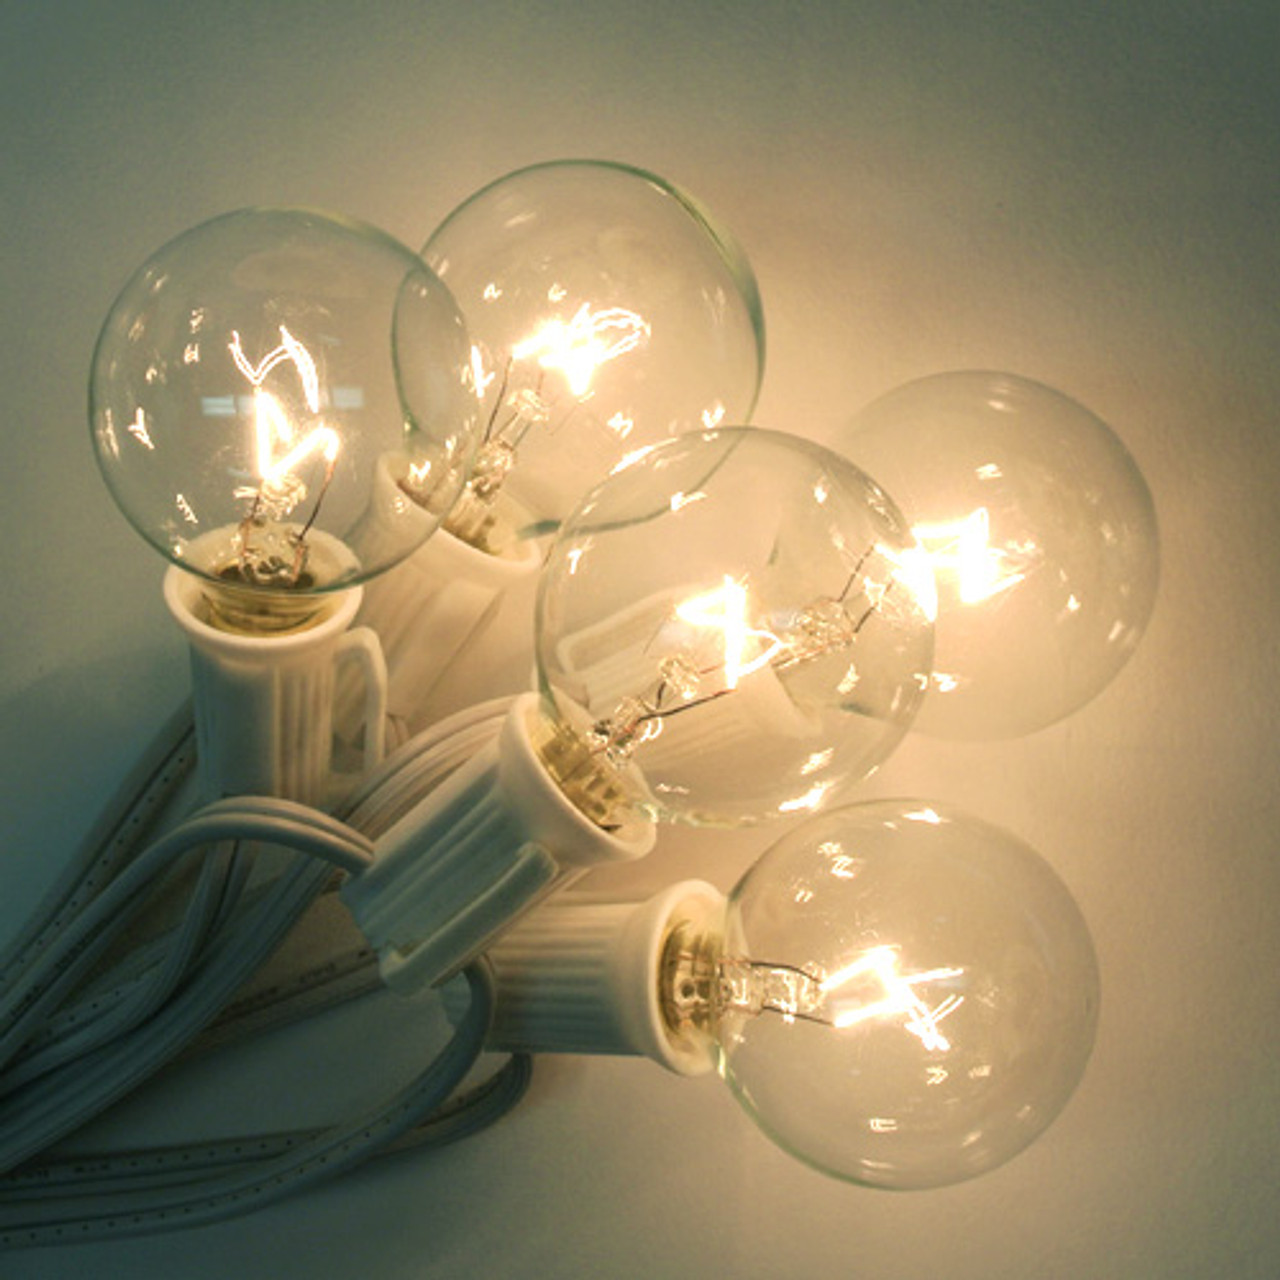 g40 25 string lights set clear w white cord